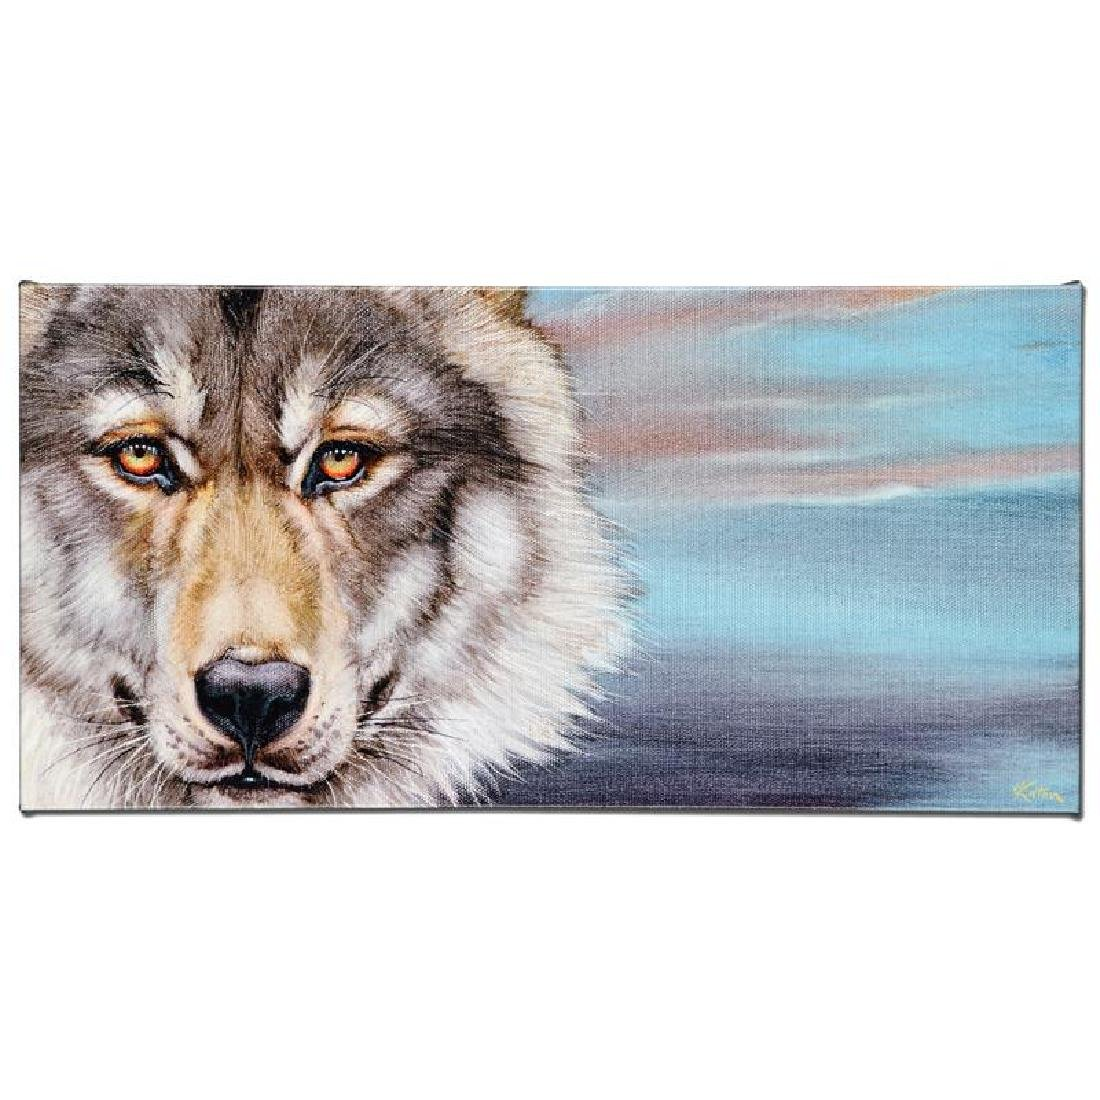 """Wolf"" Limited Edition Giclee on Canvas by Martin Katon - 2"